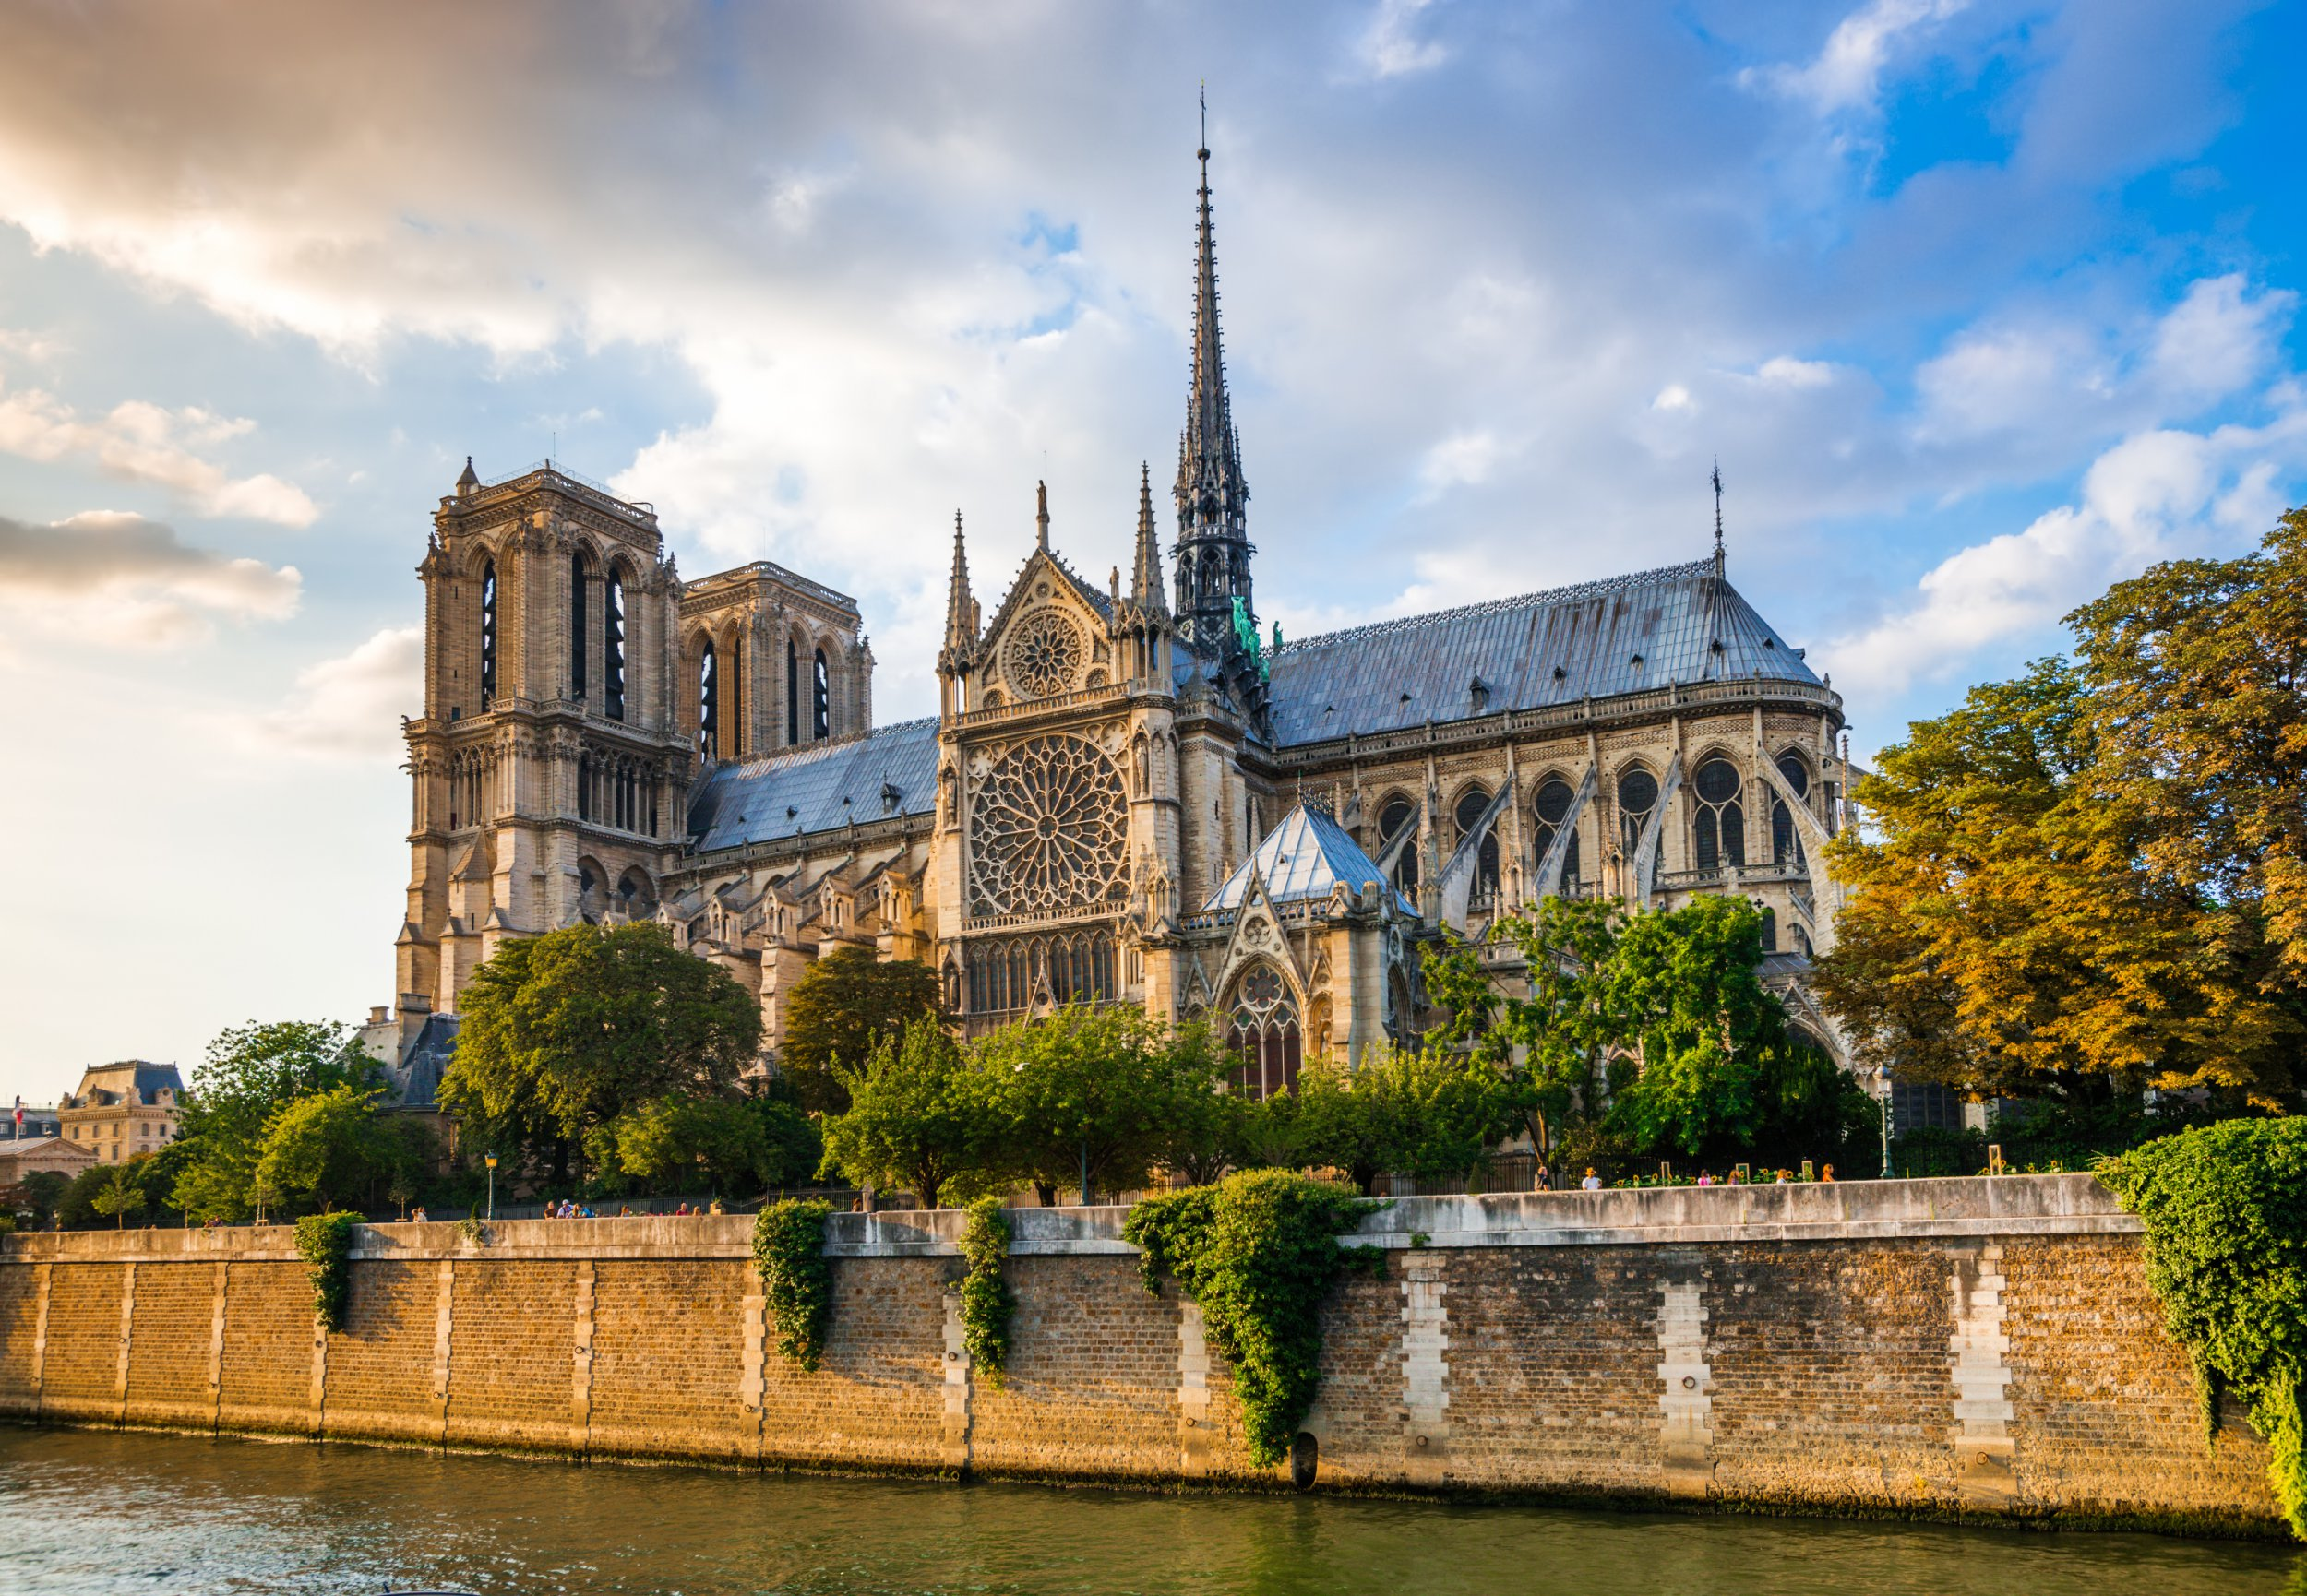 Inside Notre Dame's history – when was it built, who owns it and what is it famous for?